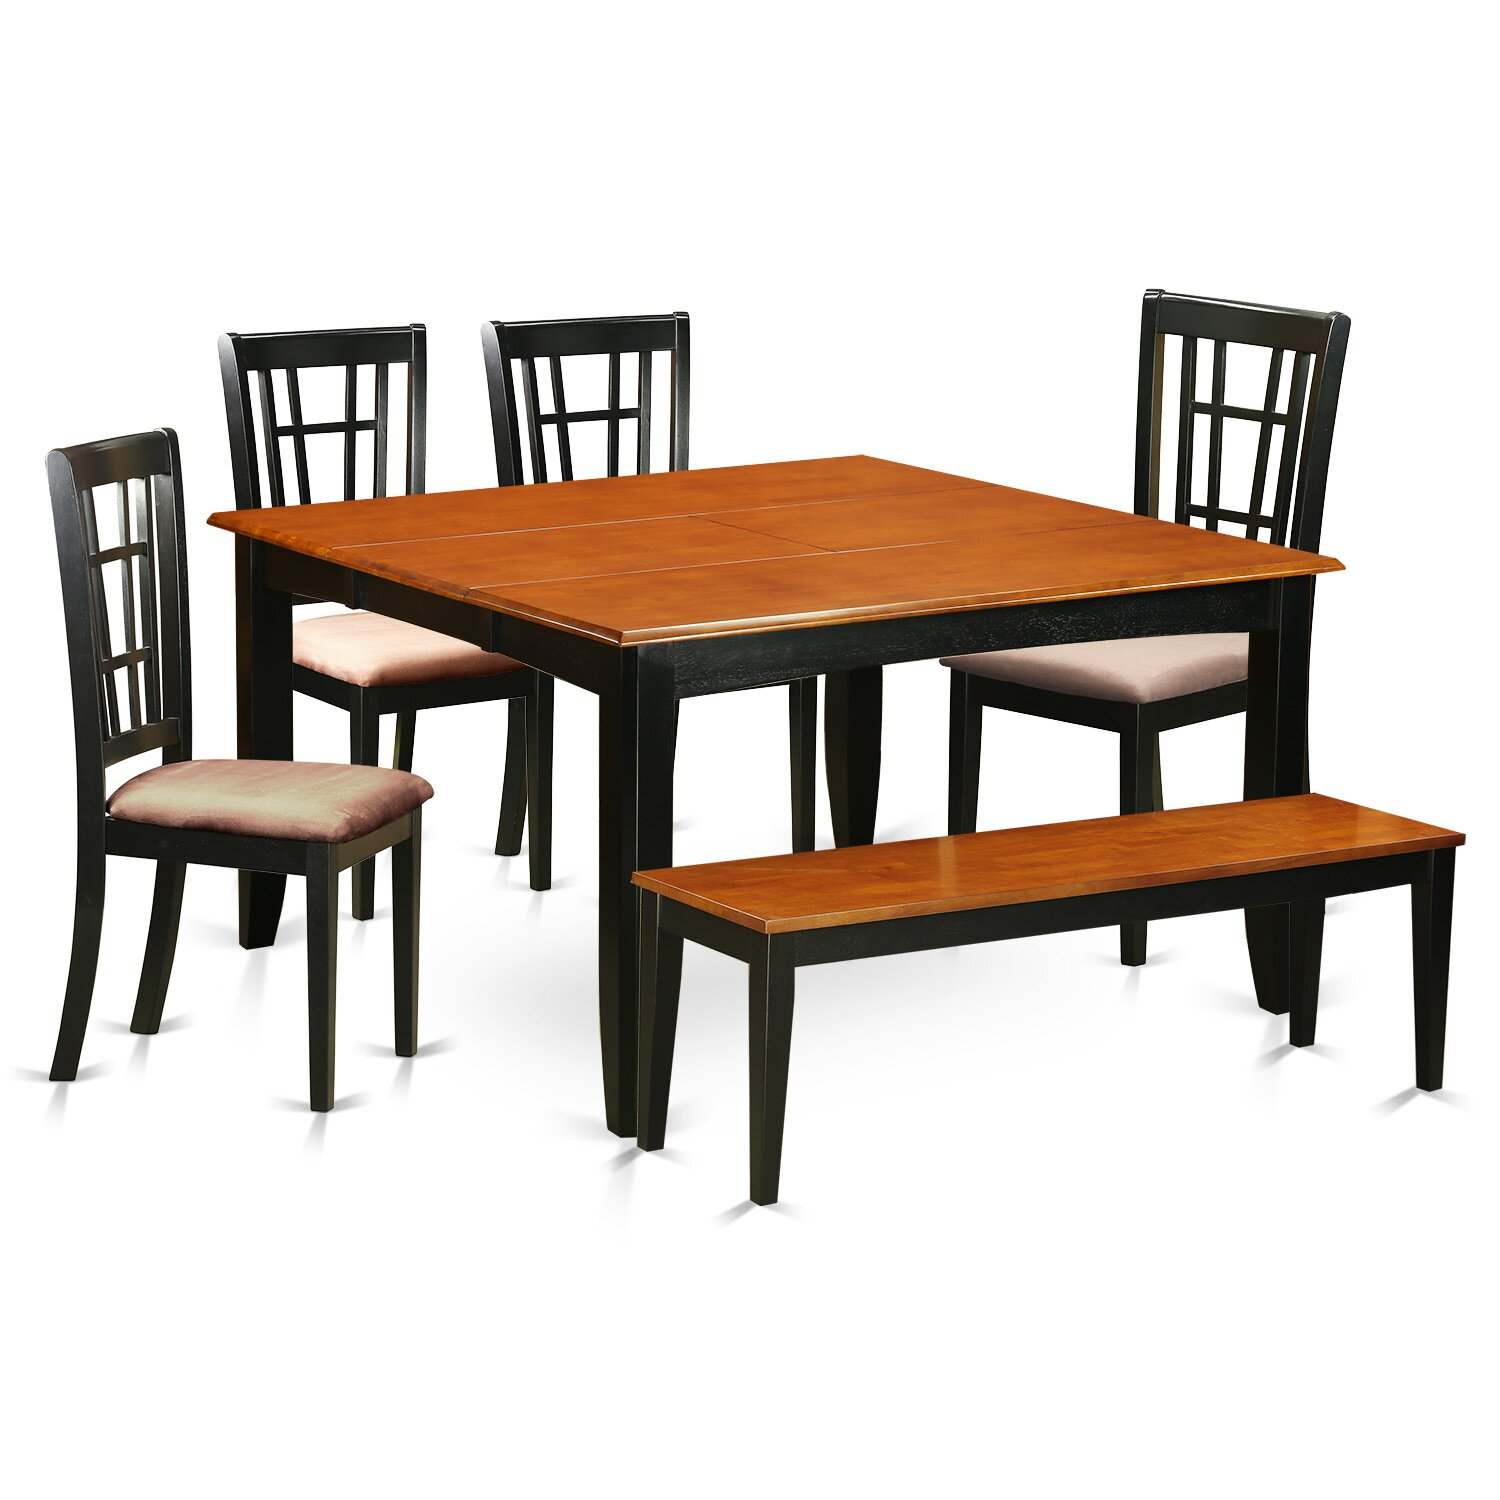 East west parfait 6 piece dining set wayfair for Solid wood dining room table and chairs